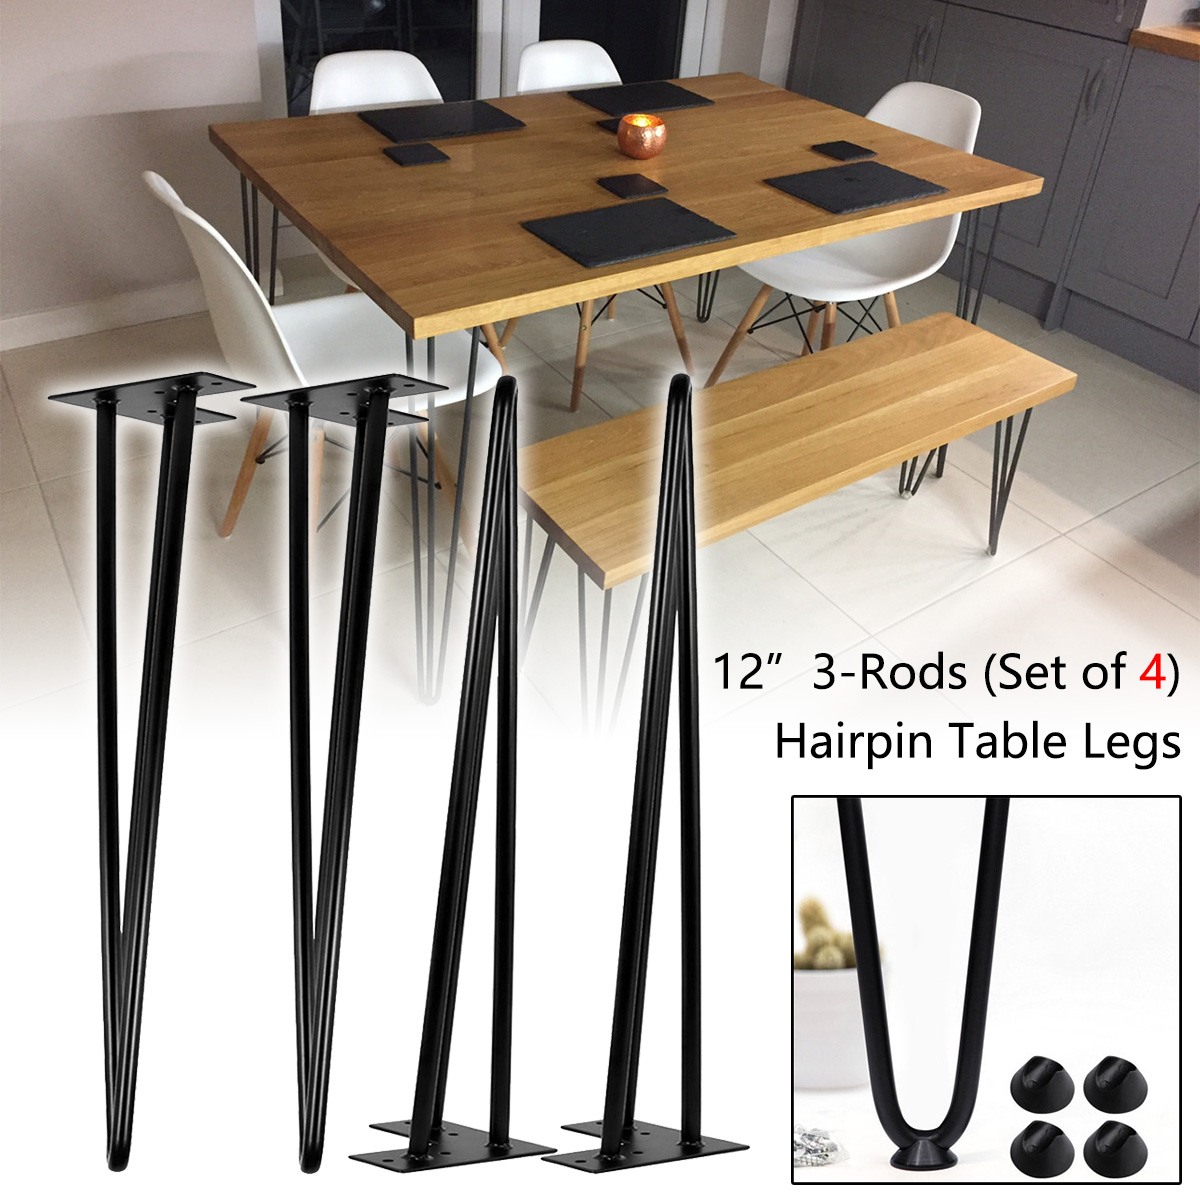 Picture of: 28 Heavy Duty Industrial Metal Leg 3 Rod Coffee Table Leg For Home Furniture Diy Office Desk End Table Night Stand Set Of 4 Hairpin Table Leg Bspsss6no2 Edu In